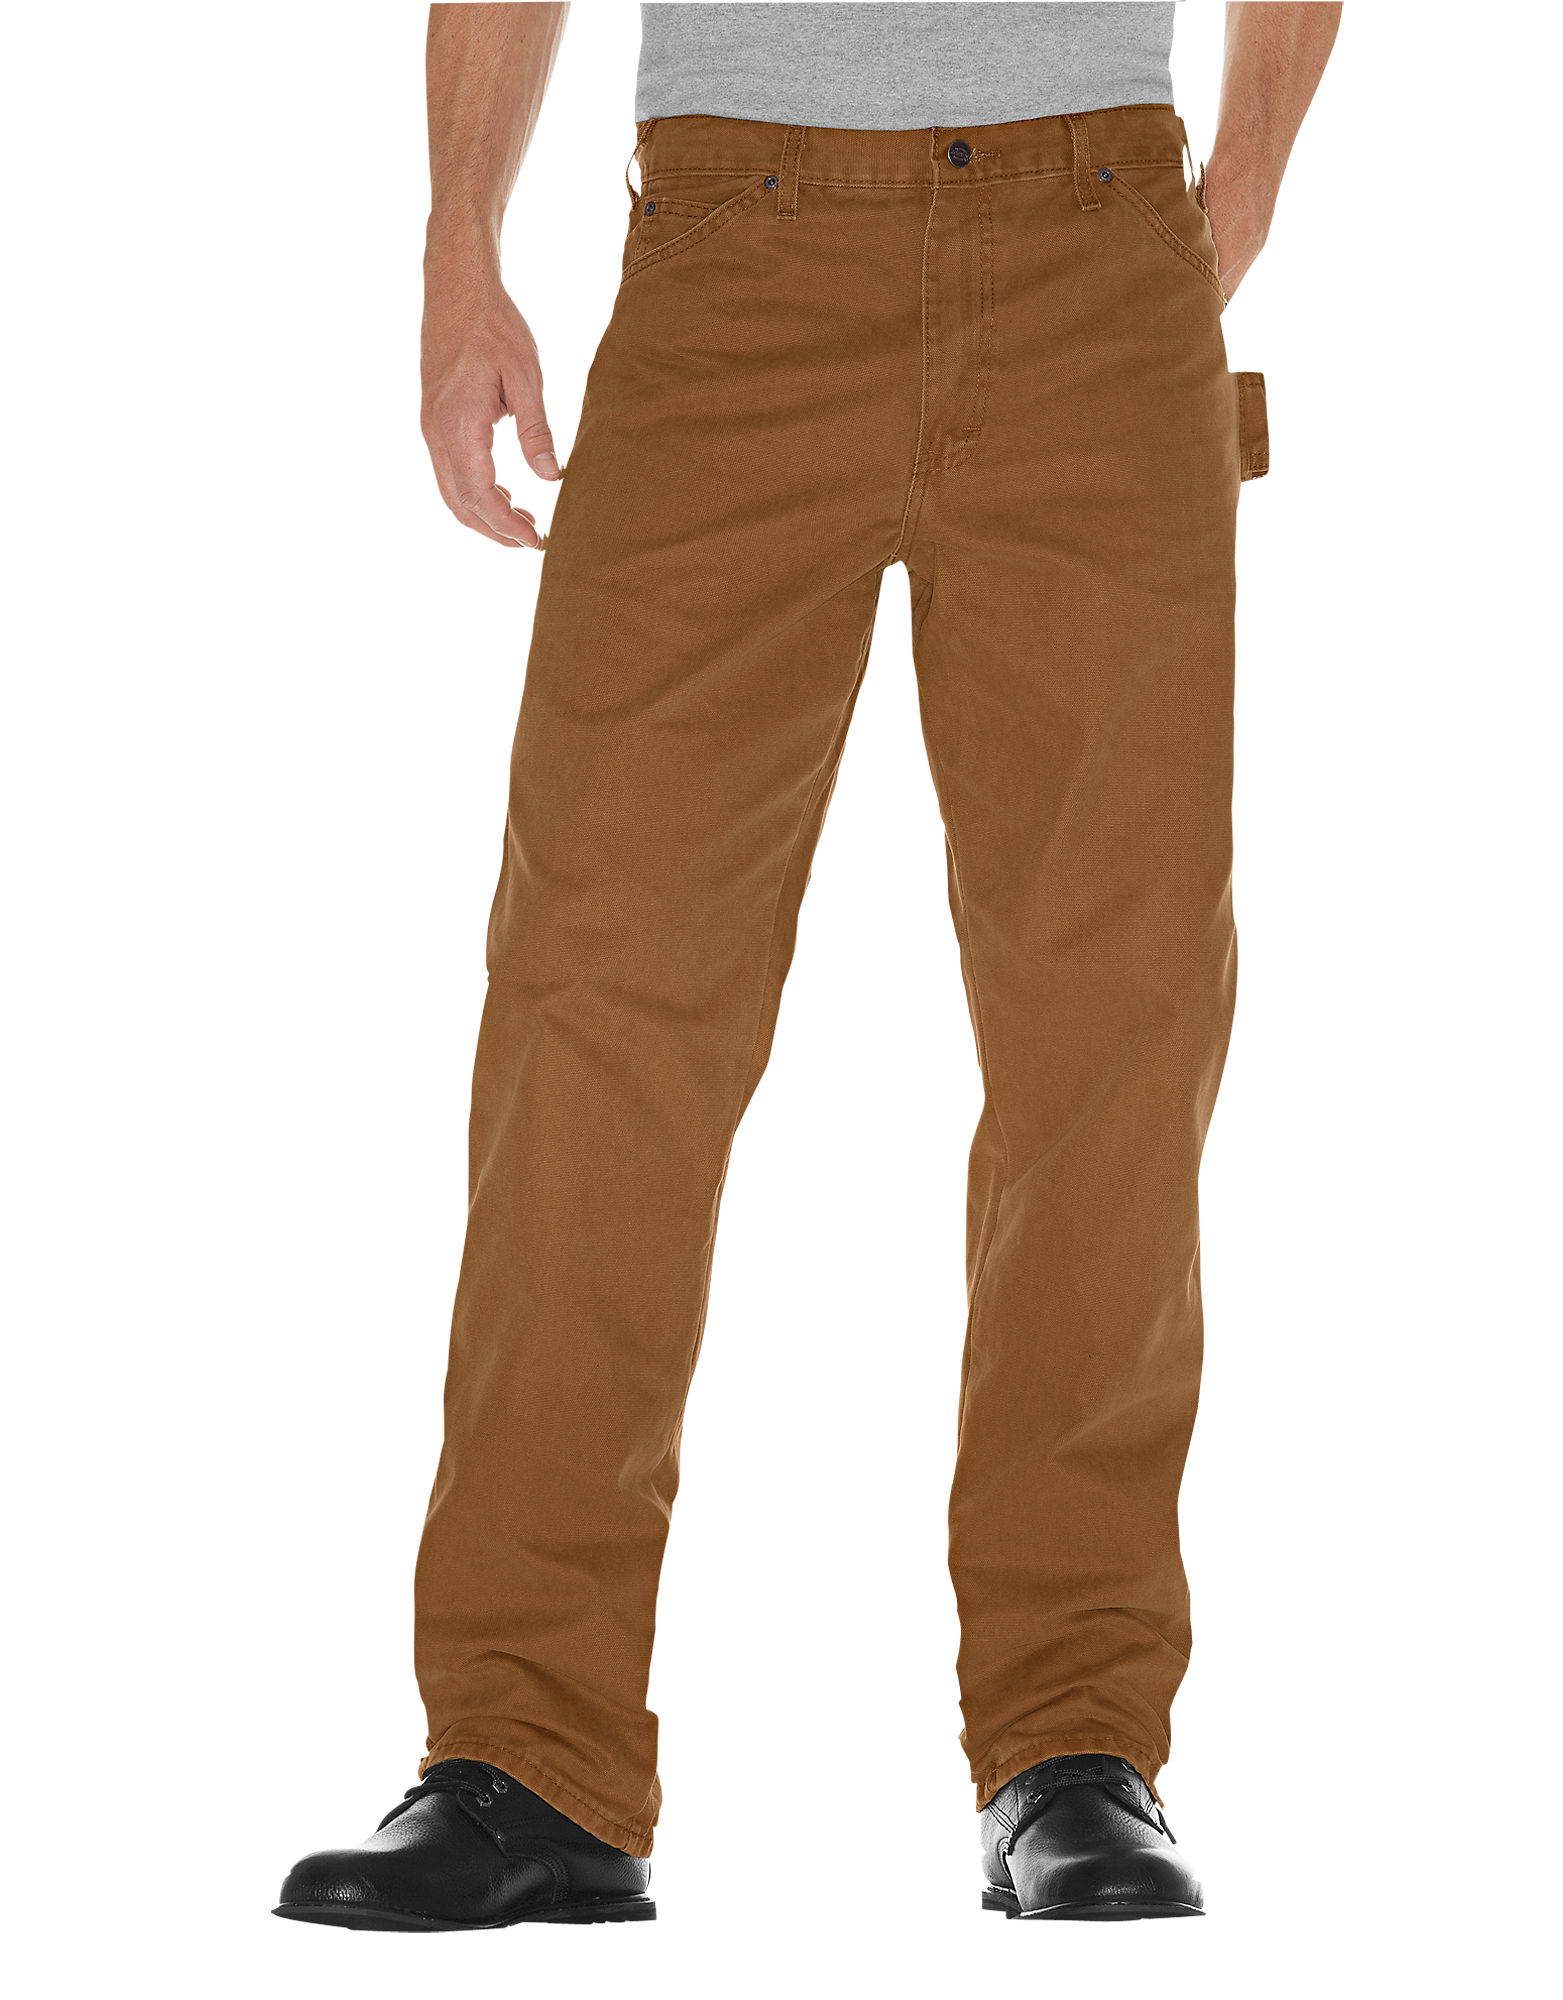 Dickies Mens Relaxed Fit Sanded Duck Carpenter Jean